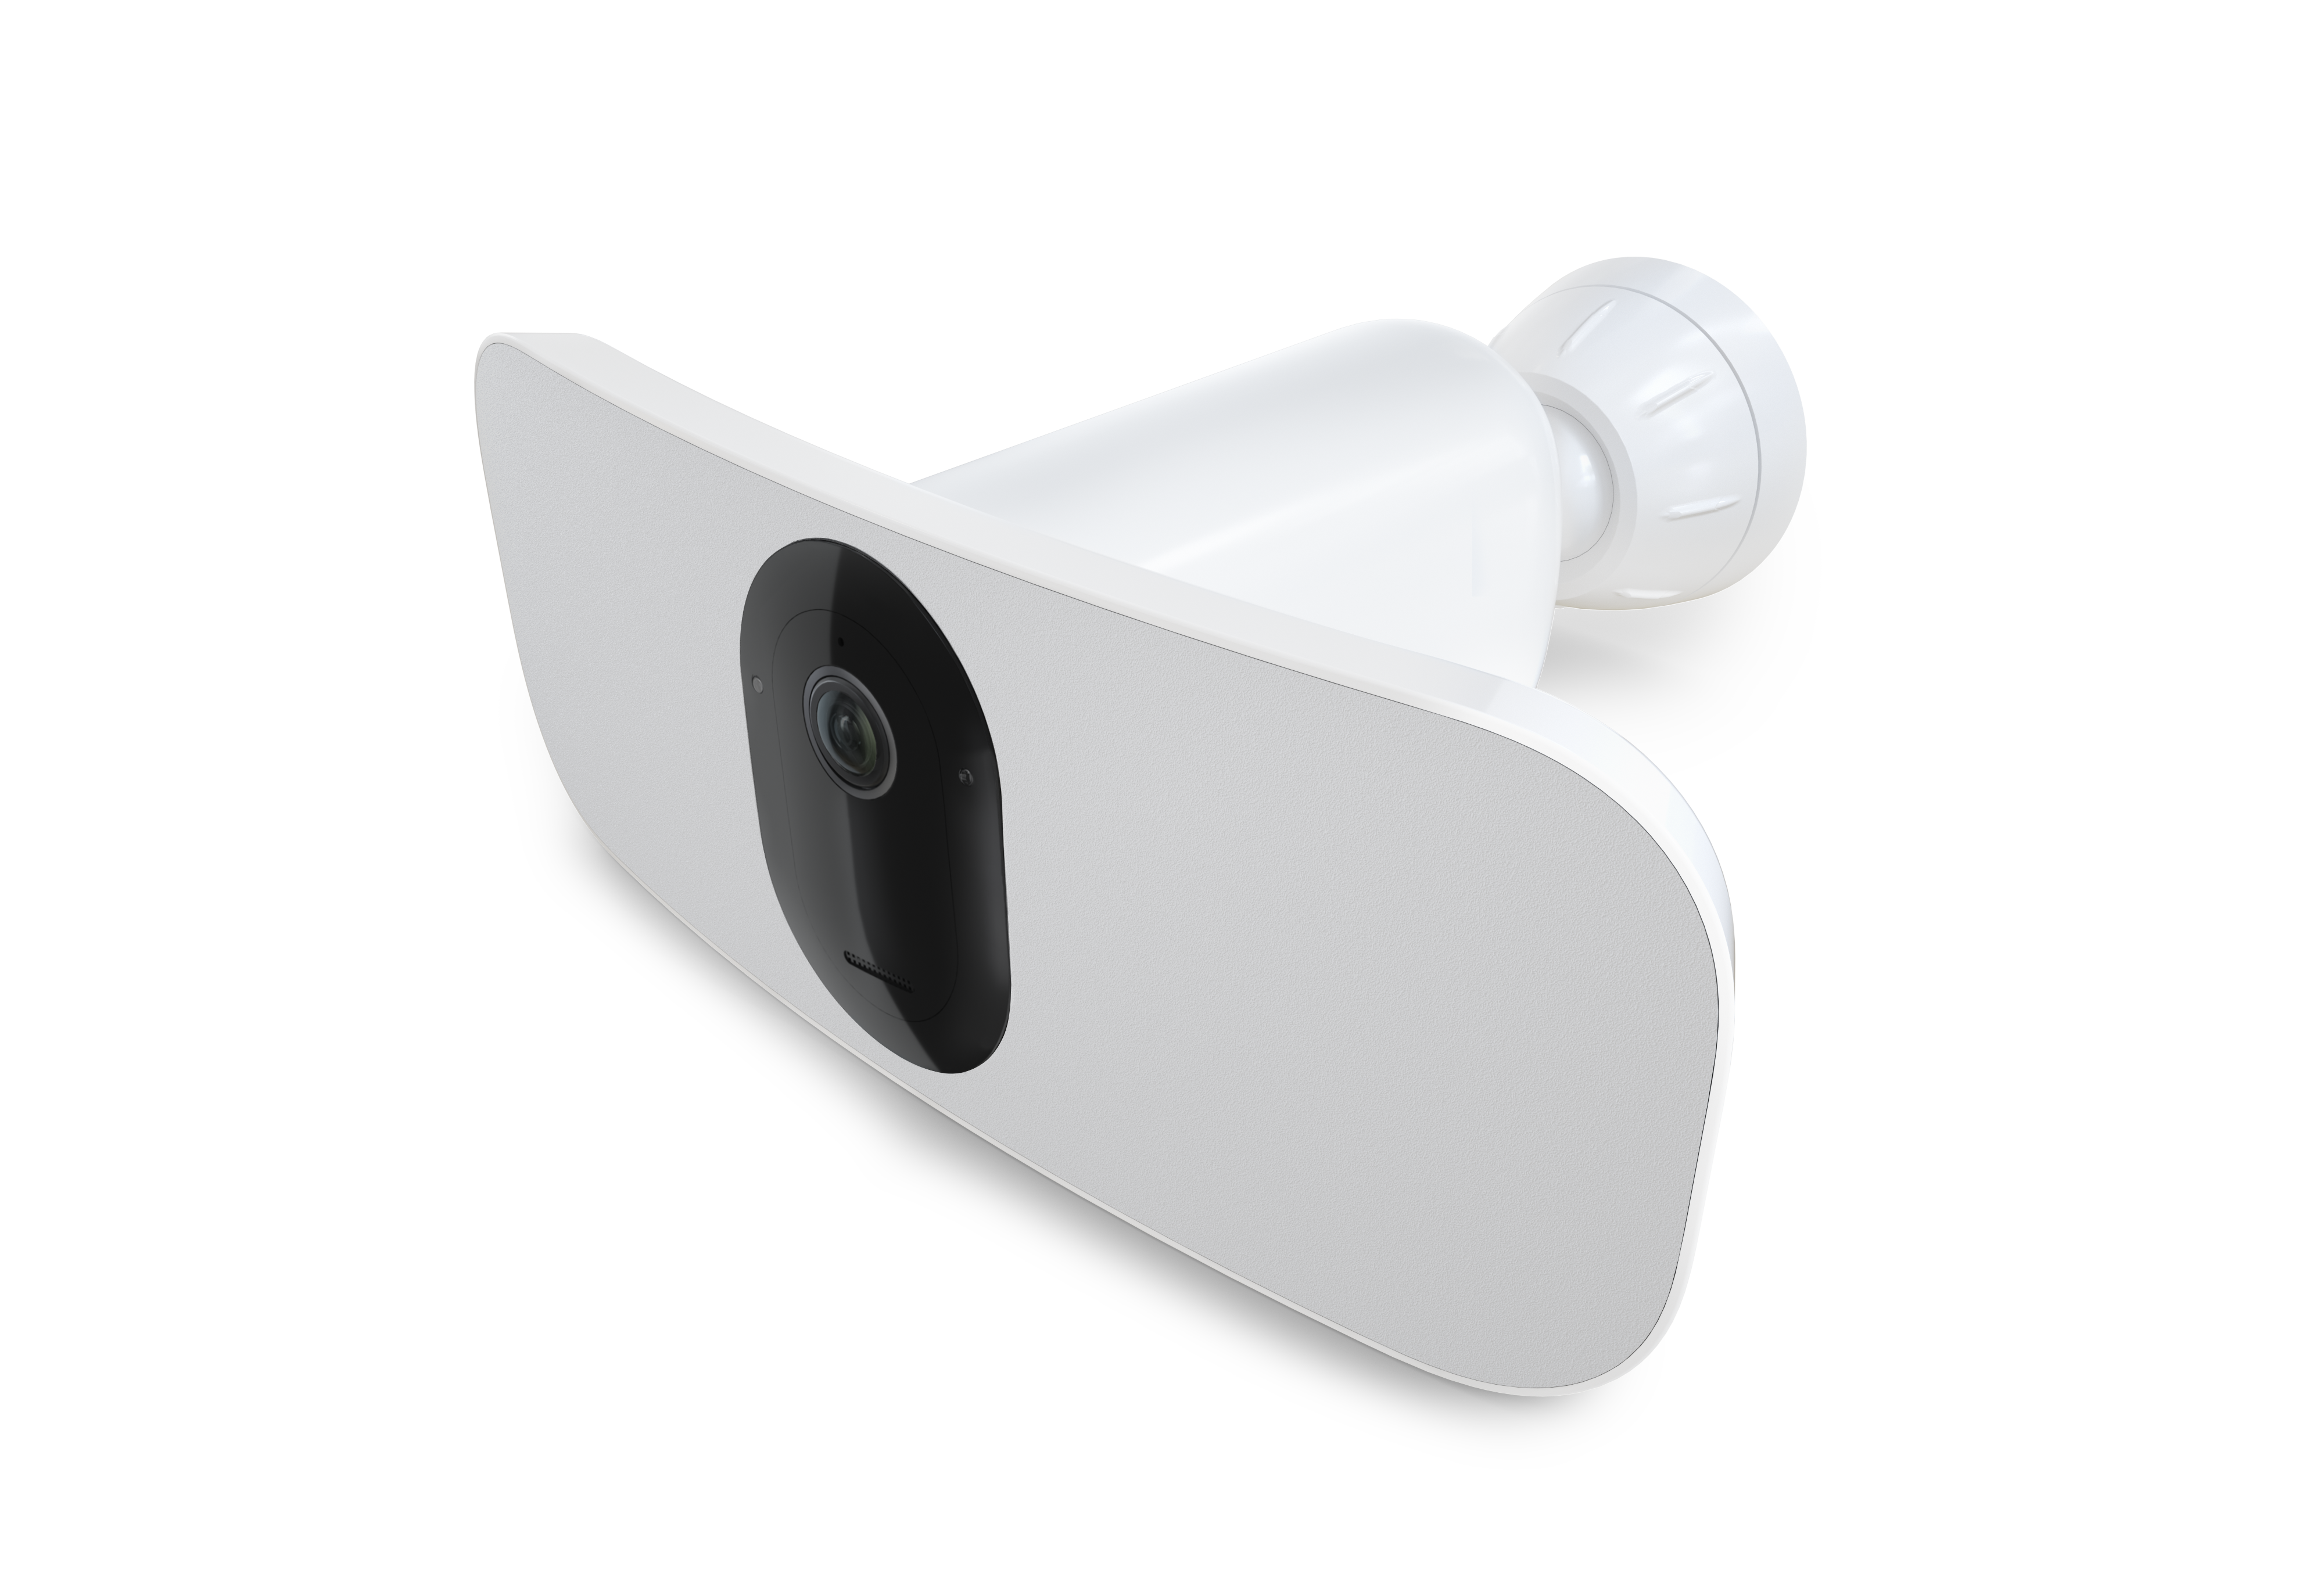 Arlo Adds A Big Passive Aggressive Floodlight To Its Camera So That You Can Scare Your Neighbors Internet Technology News